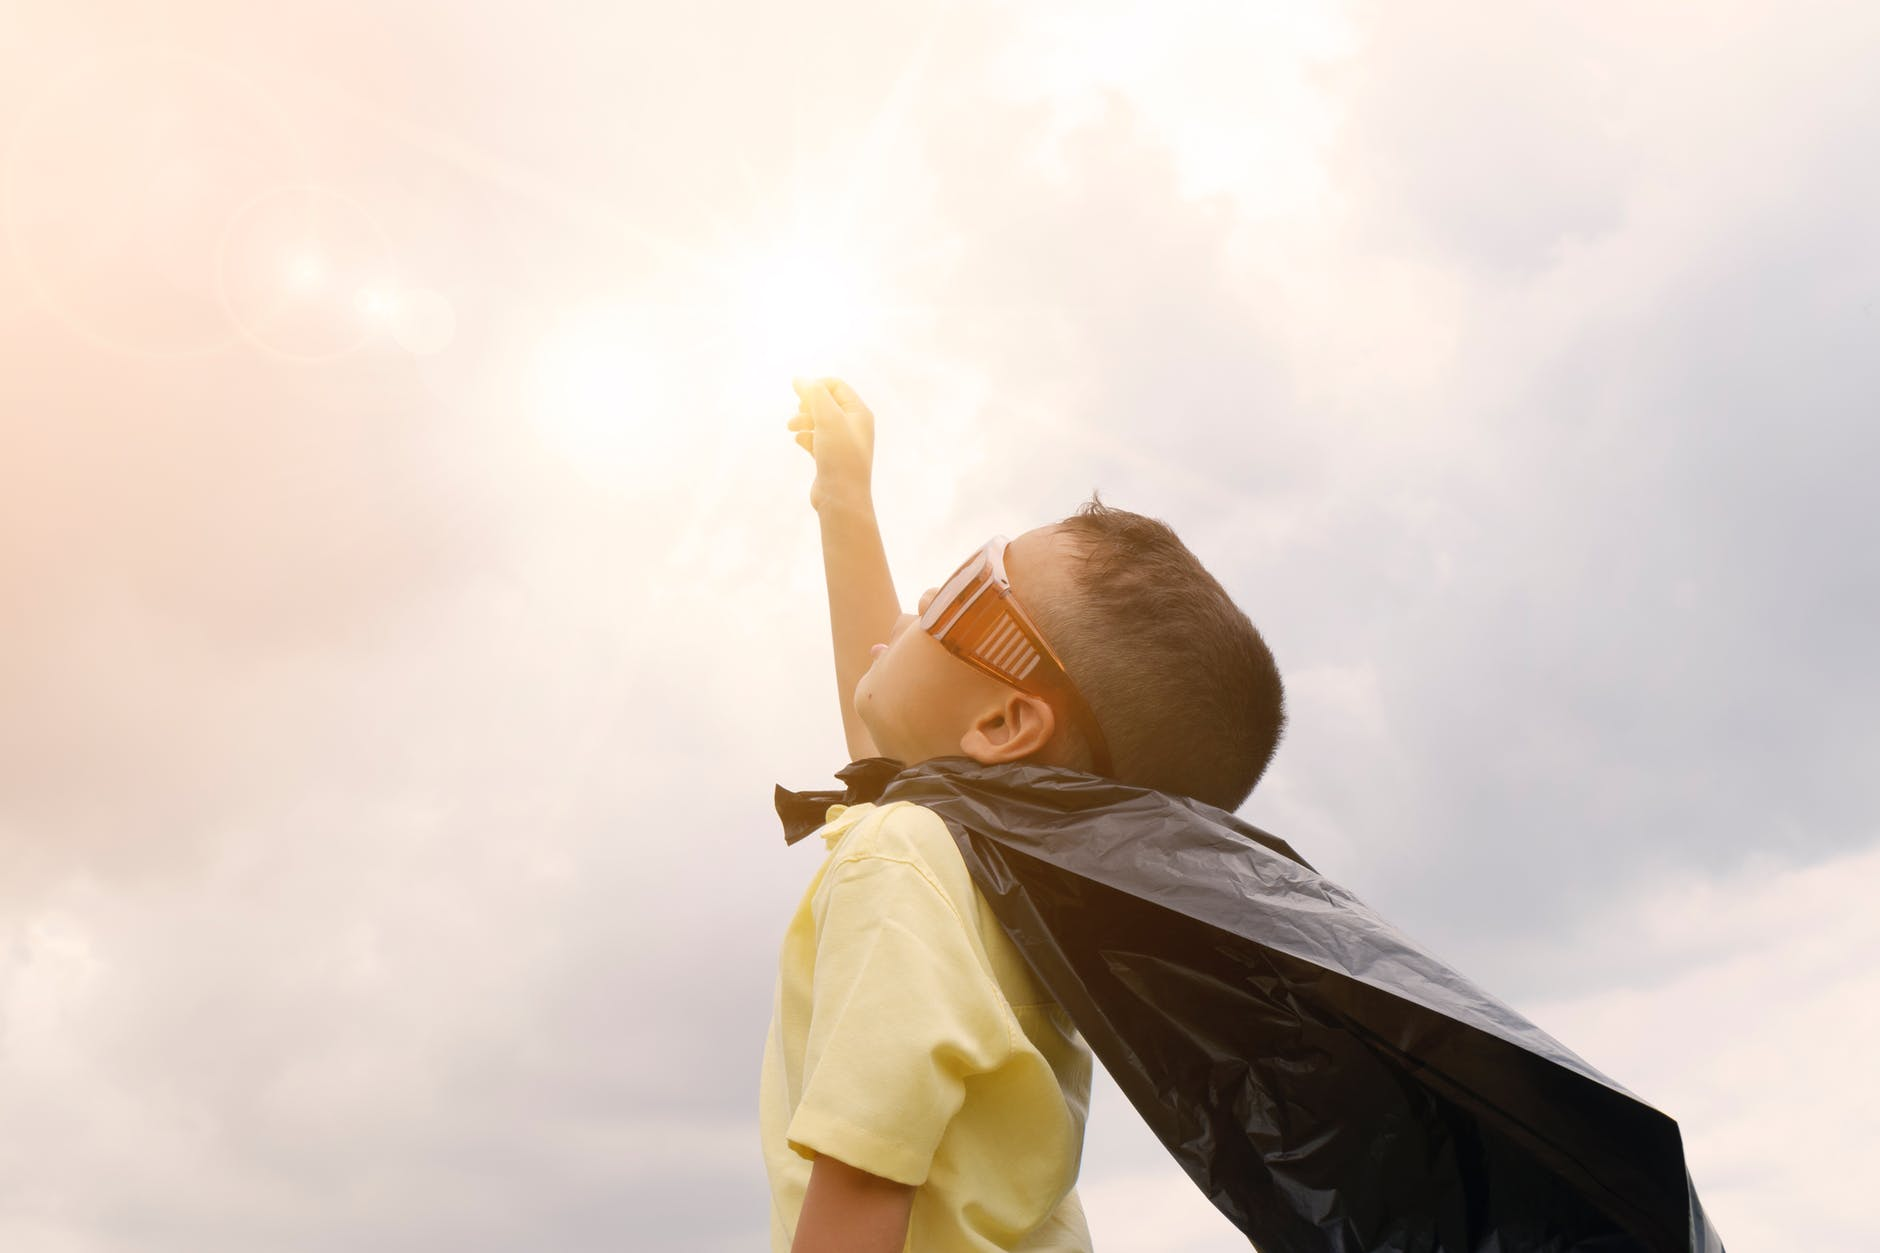 Young child about five looks up to sky with raised hand.  Child is dressed in a cape made out of a garbage bag and red sunglasses on.